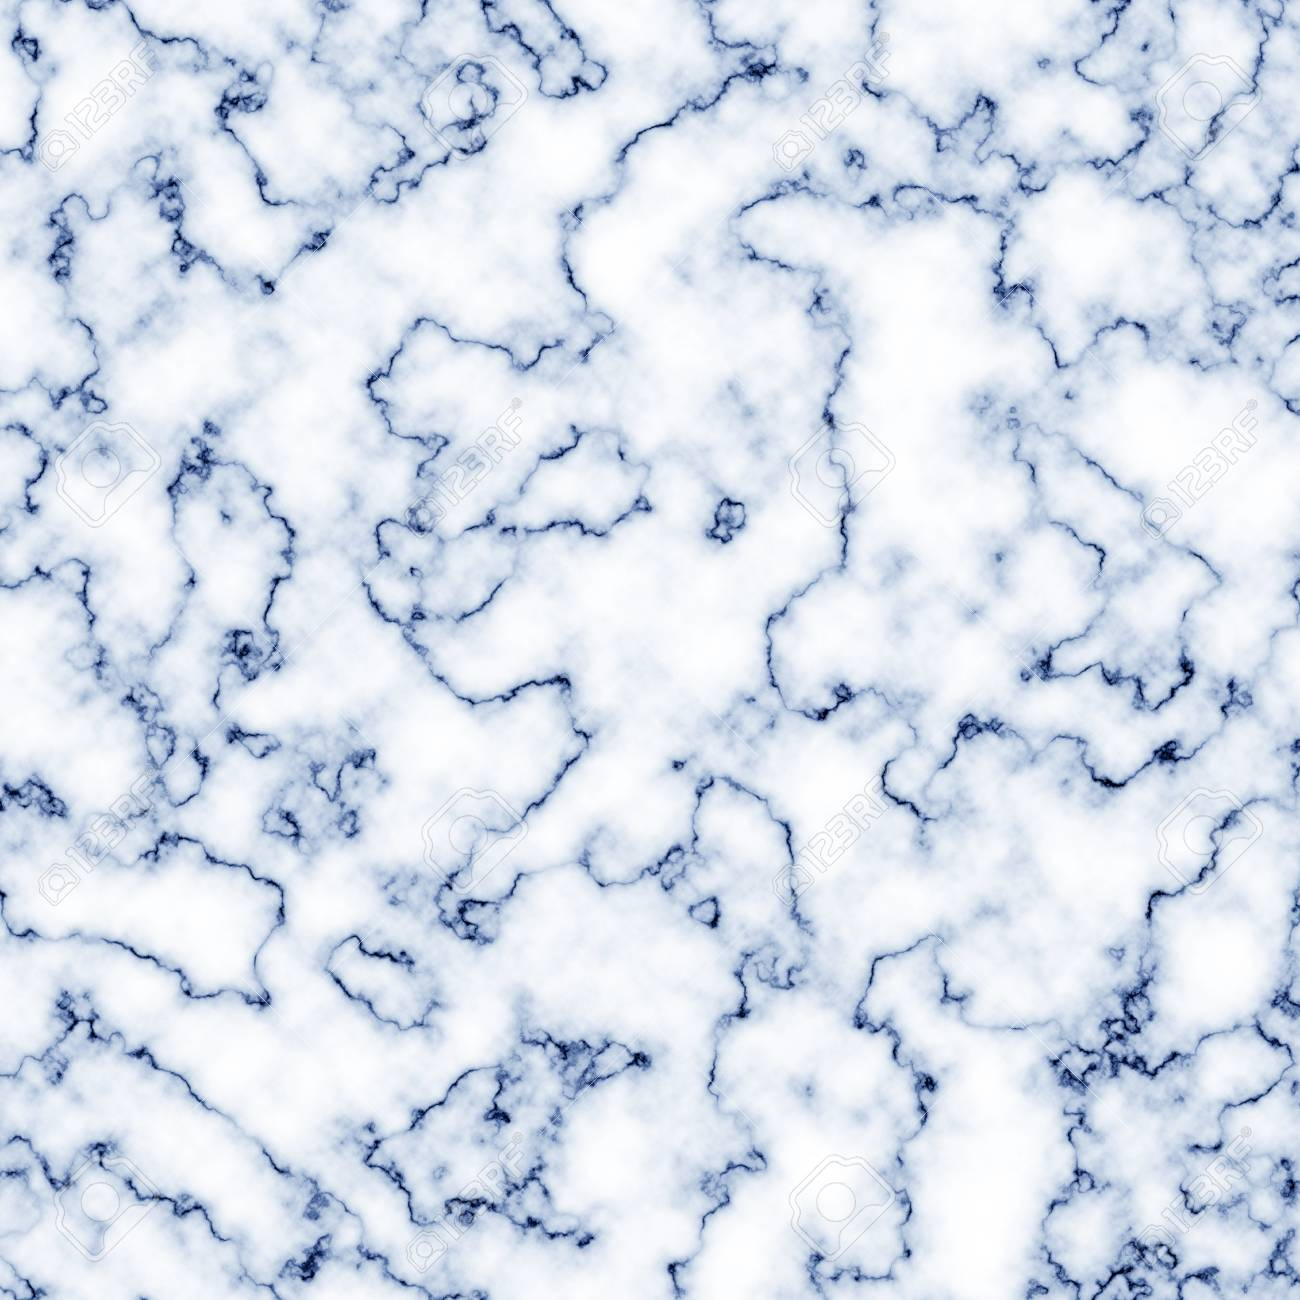 White Blue Marble Patterns Texture Abstract Background Stock Photo Picture And Royalty Free Image Image 97304425